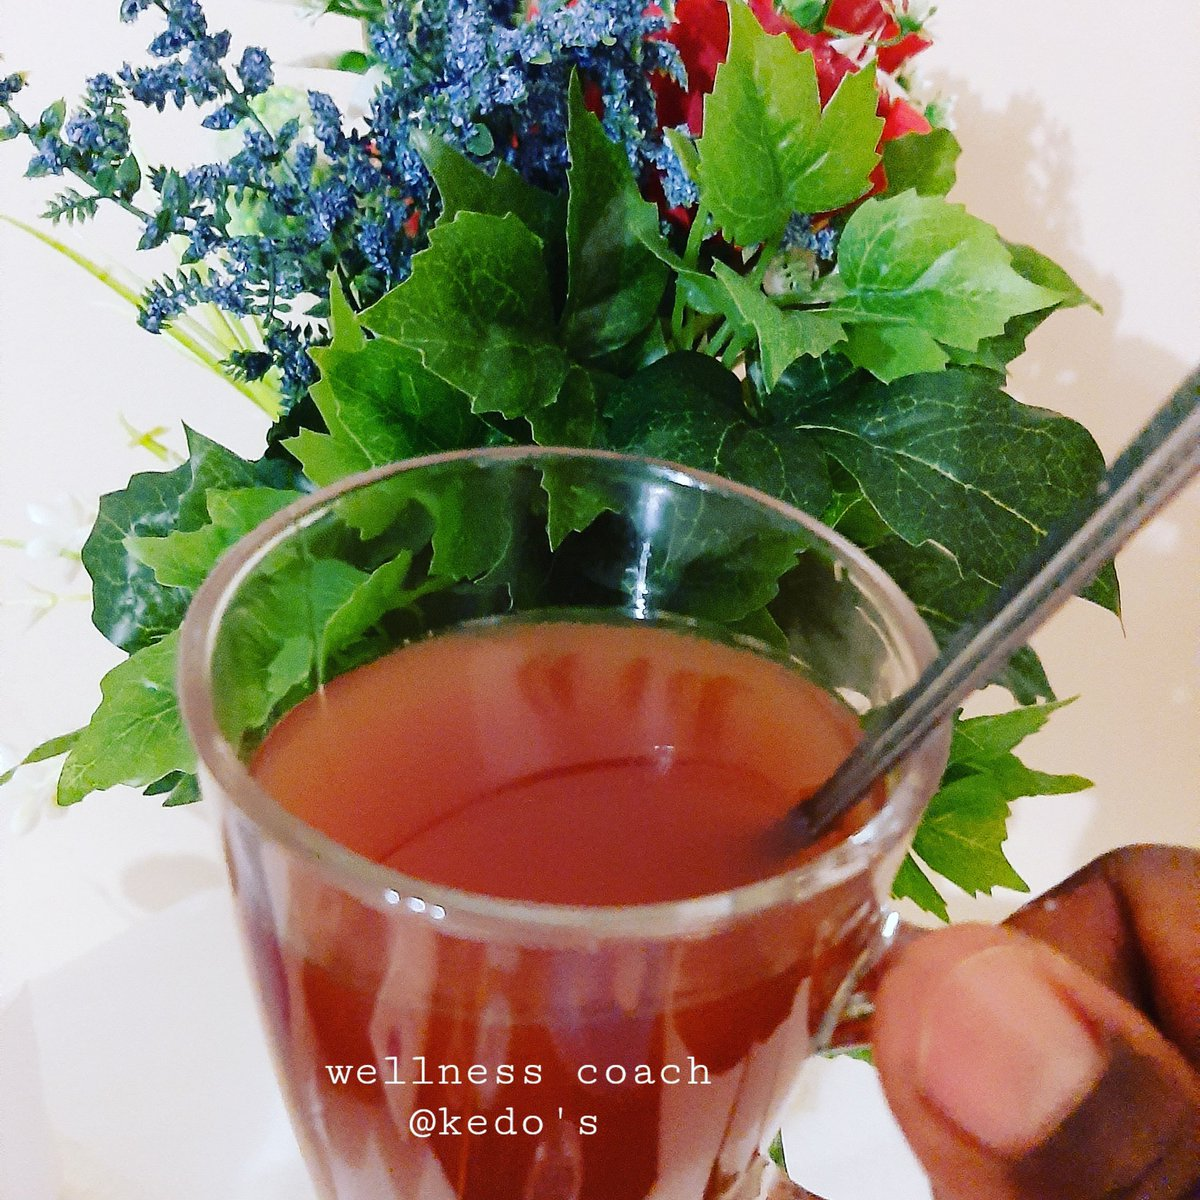 Refreshing with instant herbal tea. #FridayVibes #FridayThoughts  #lifestyle #LifeGoesOn #LifeIsABlessing